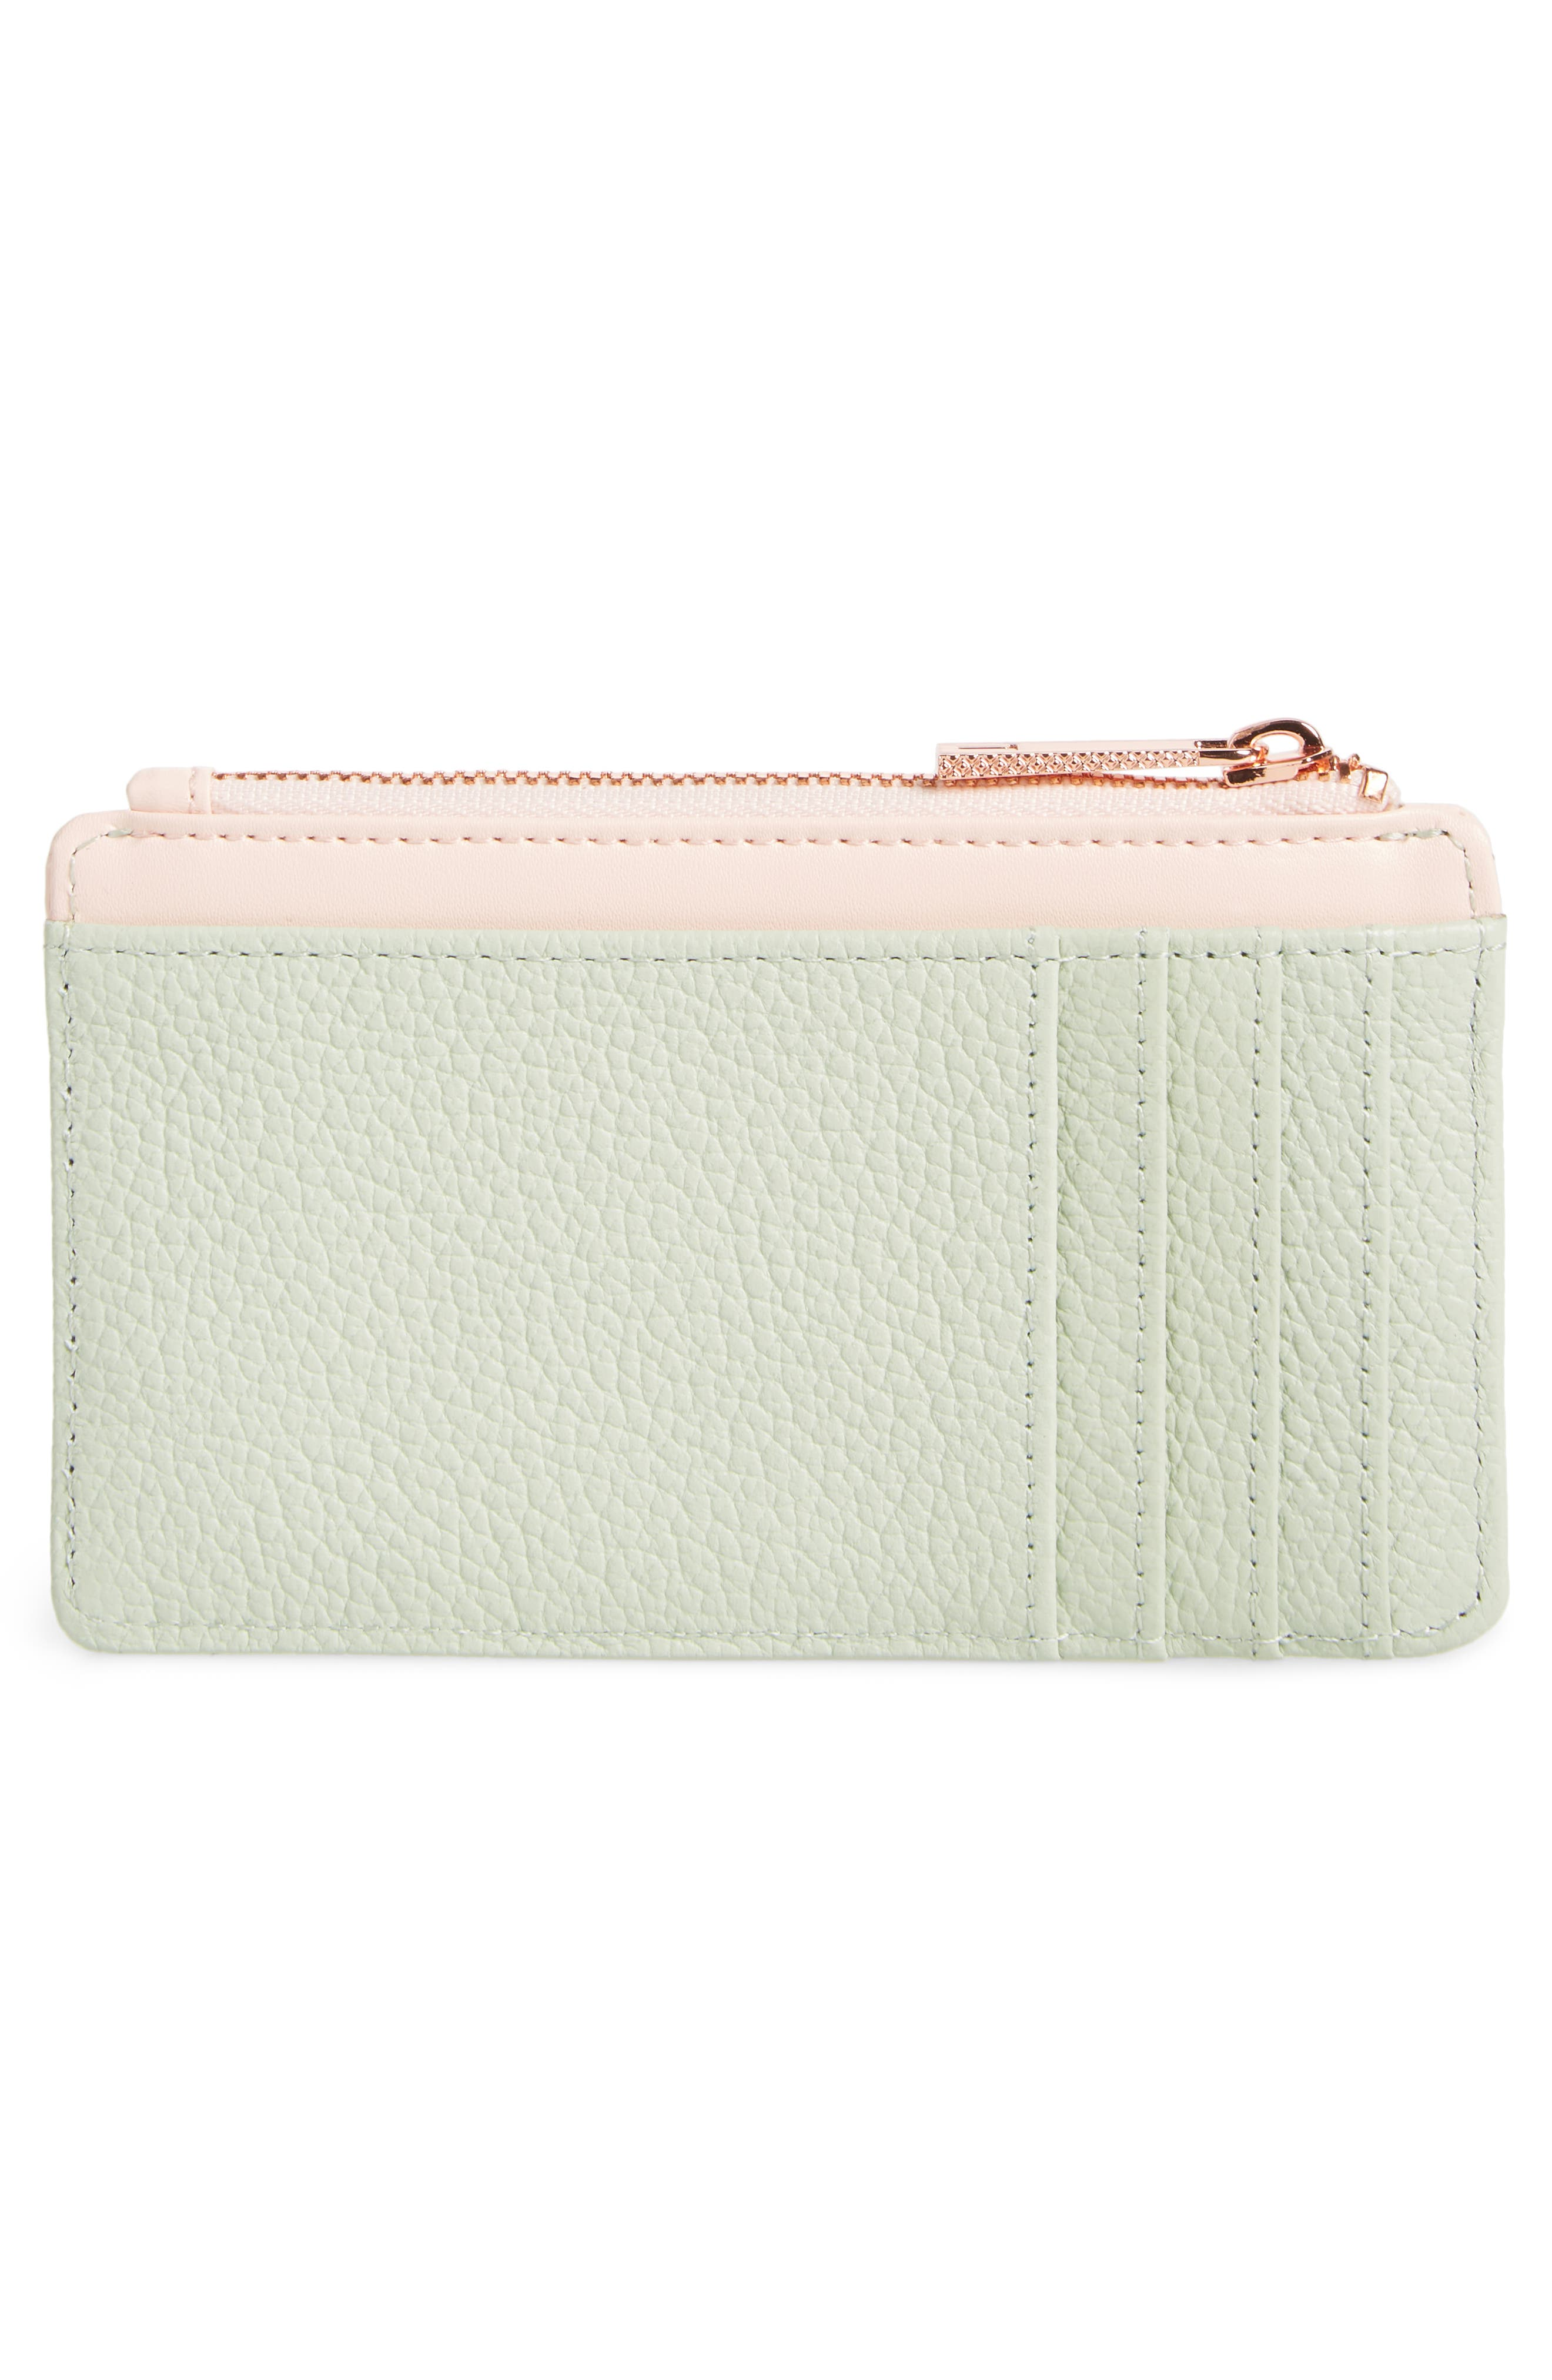 Alica Top Zip Leather Card Case,                             Alternate thumbnail 4, color,                             300